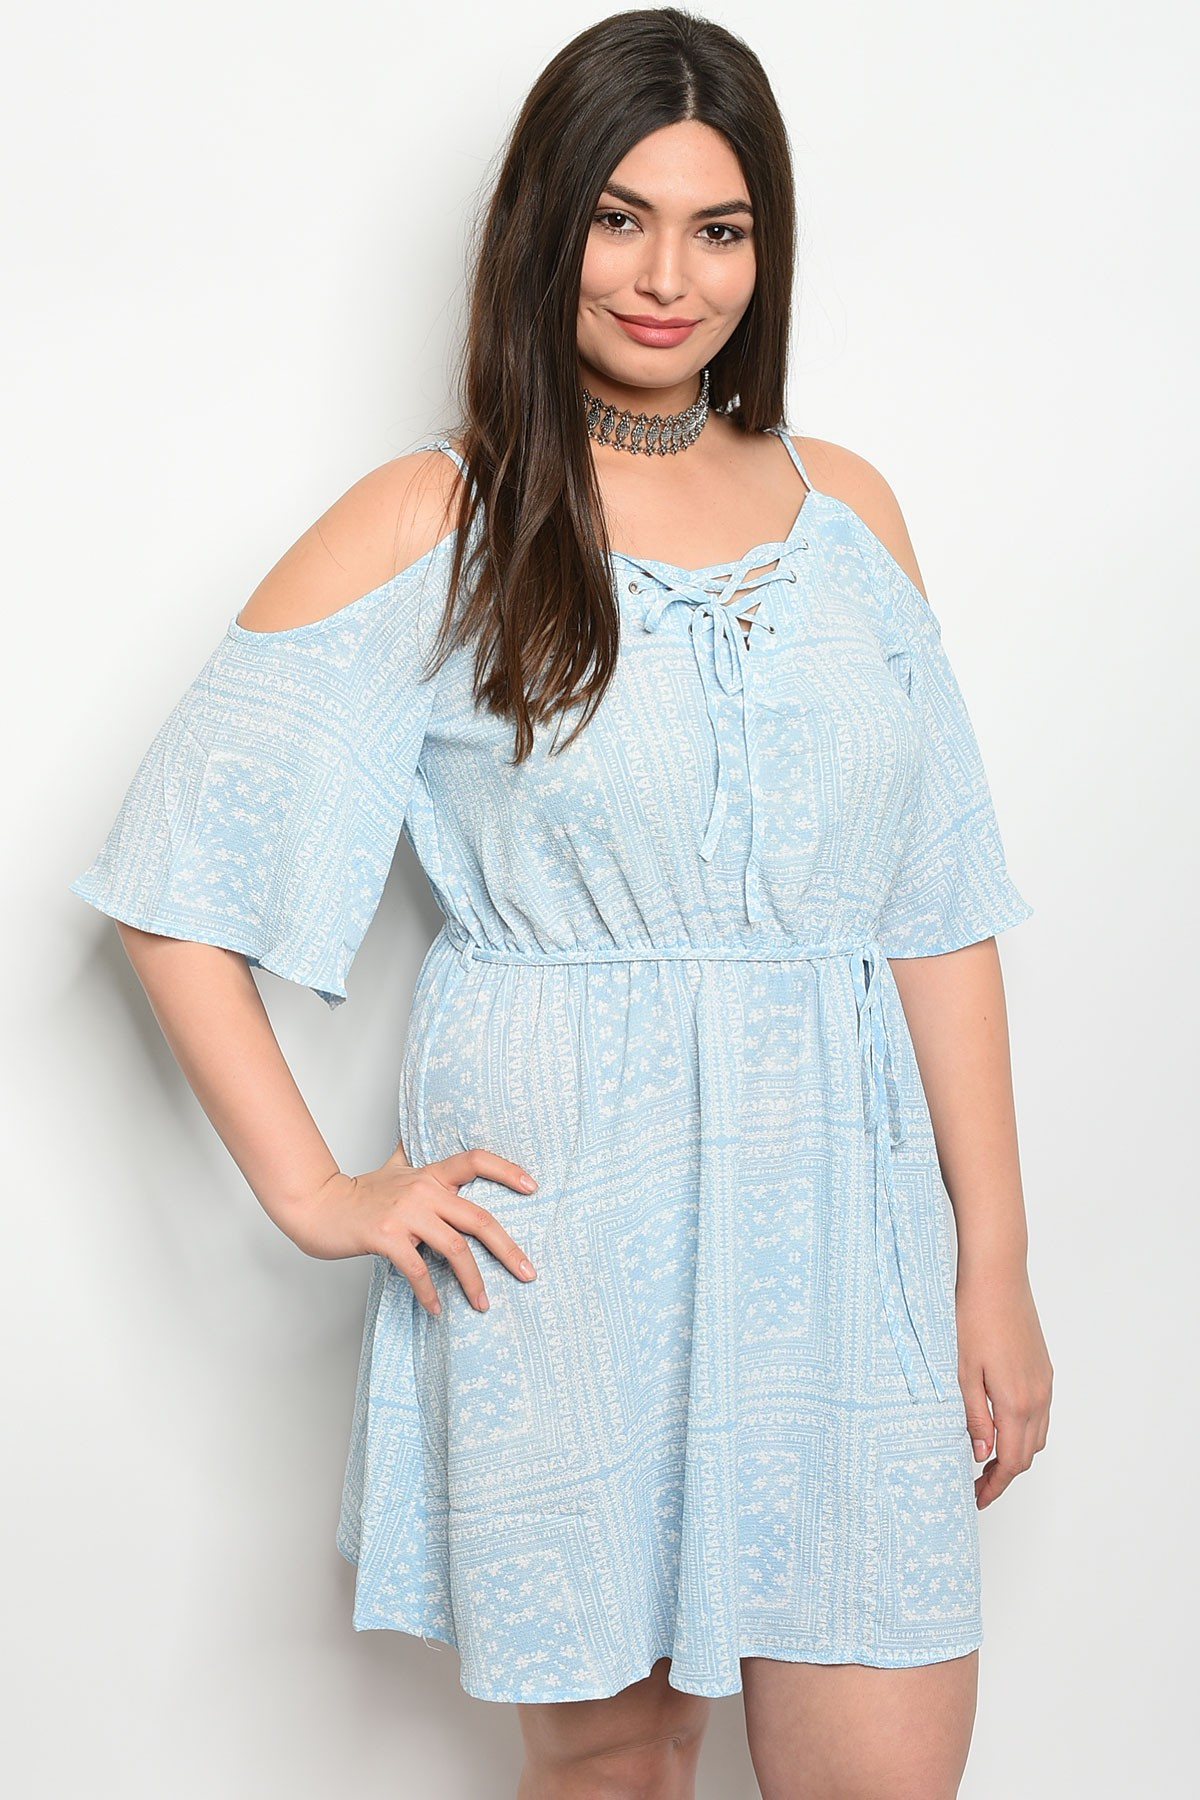 2847bcbe9b8 S12-12-2-D1494X SKY BLUE WHITE PLUS SIZE DRESS 2-2. Larger Photo ...